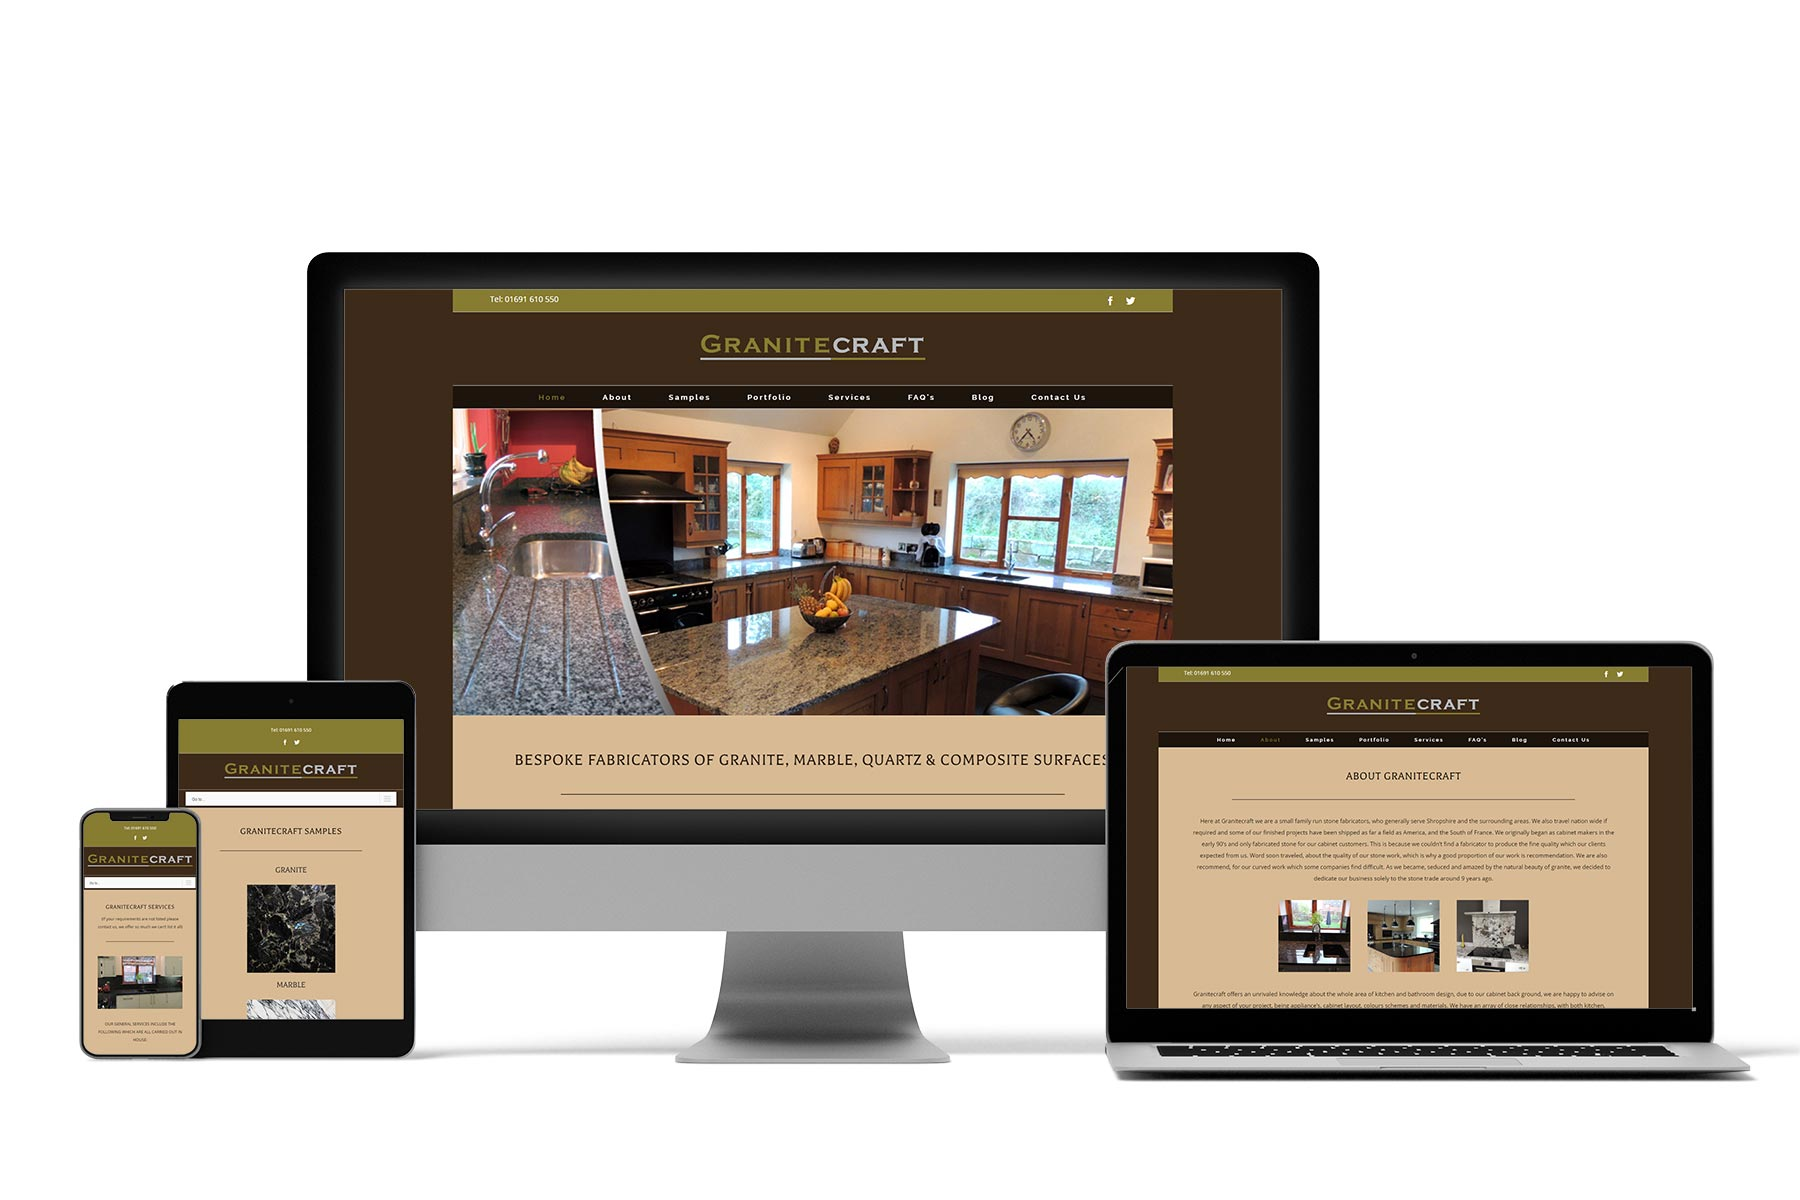 Granitecraft Brochure website by now web design